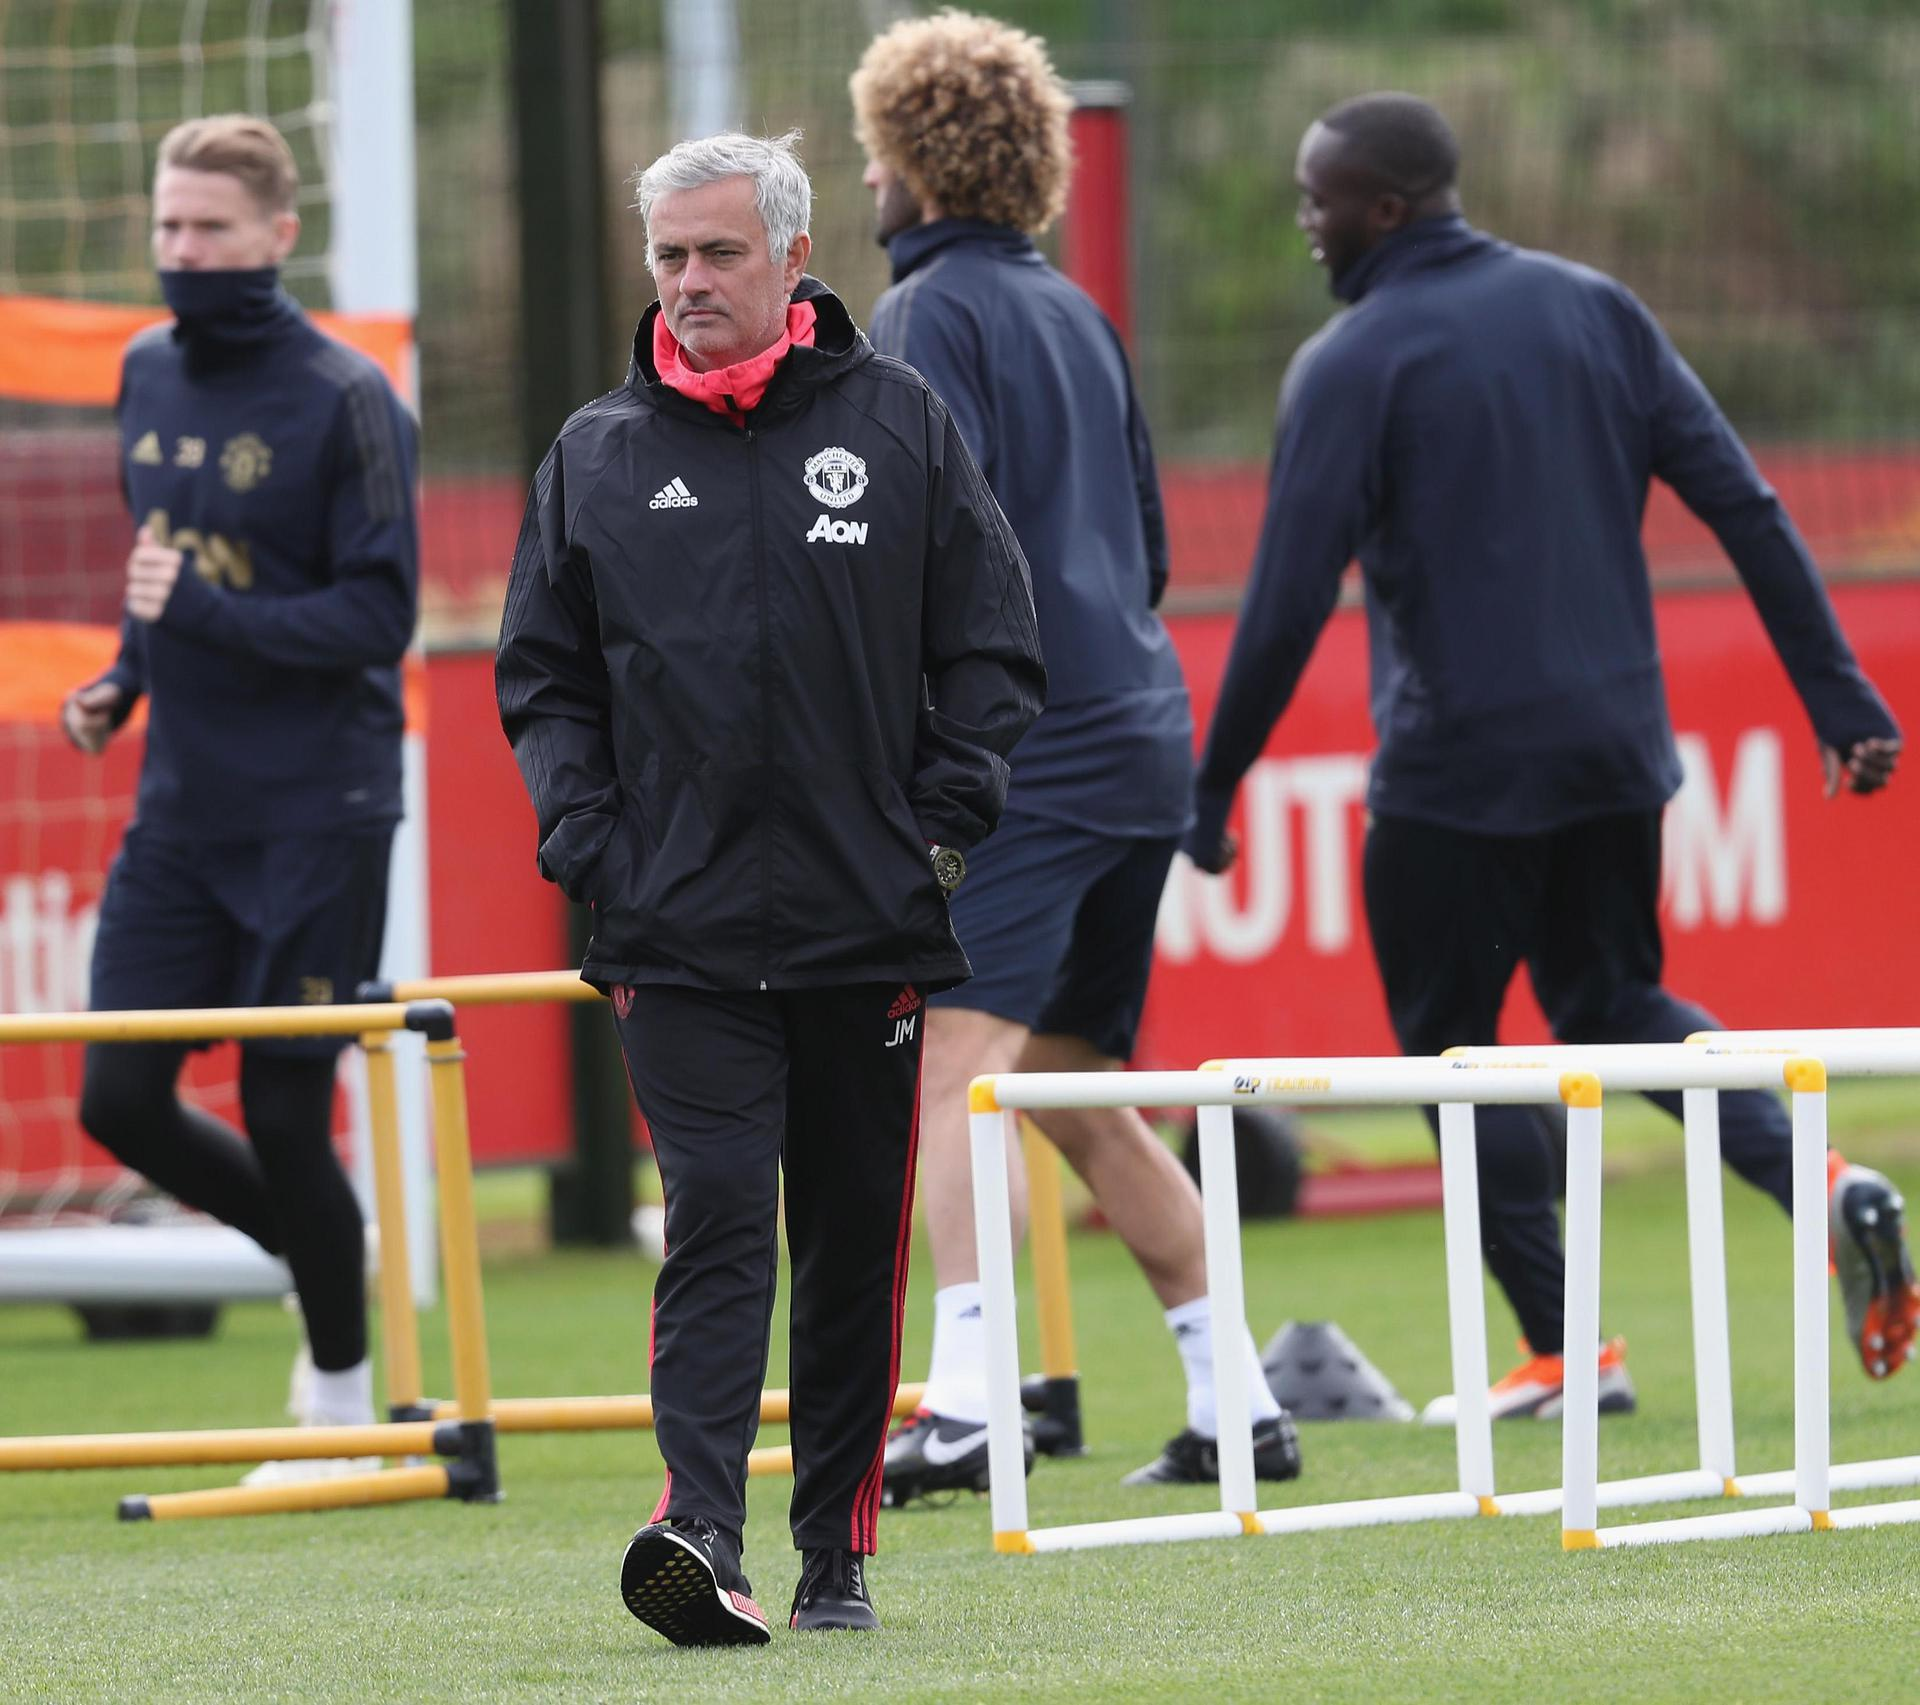 Jose Mourinho in training before the Valencia match